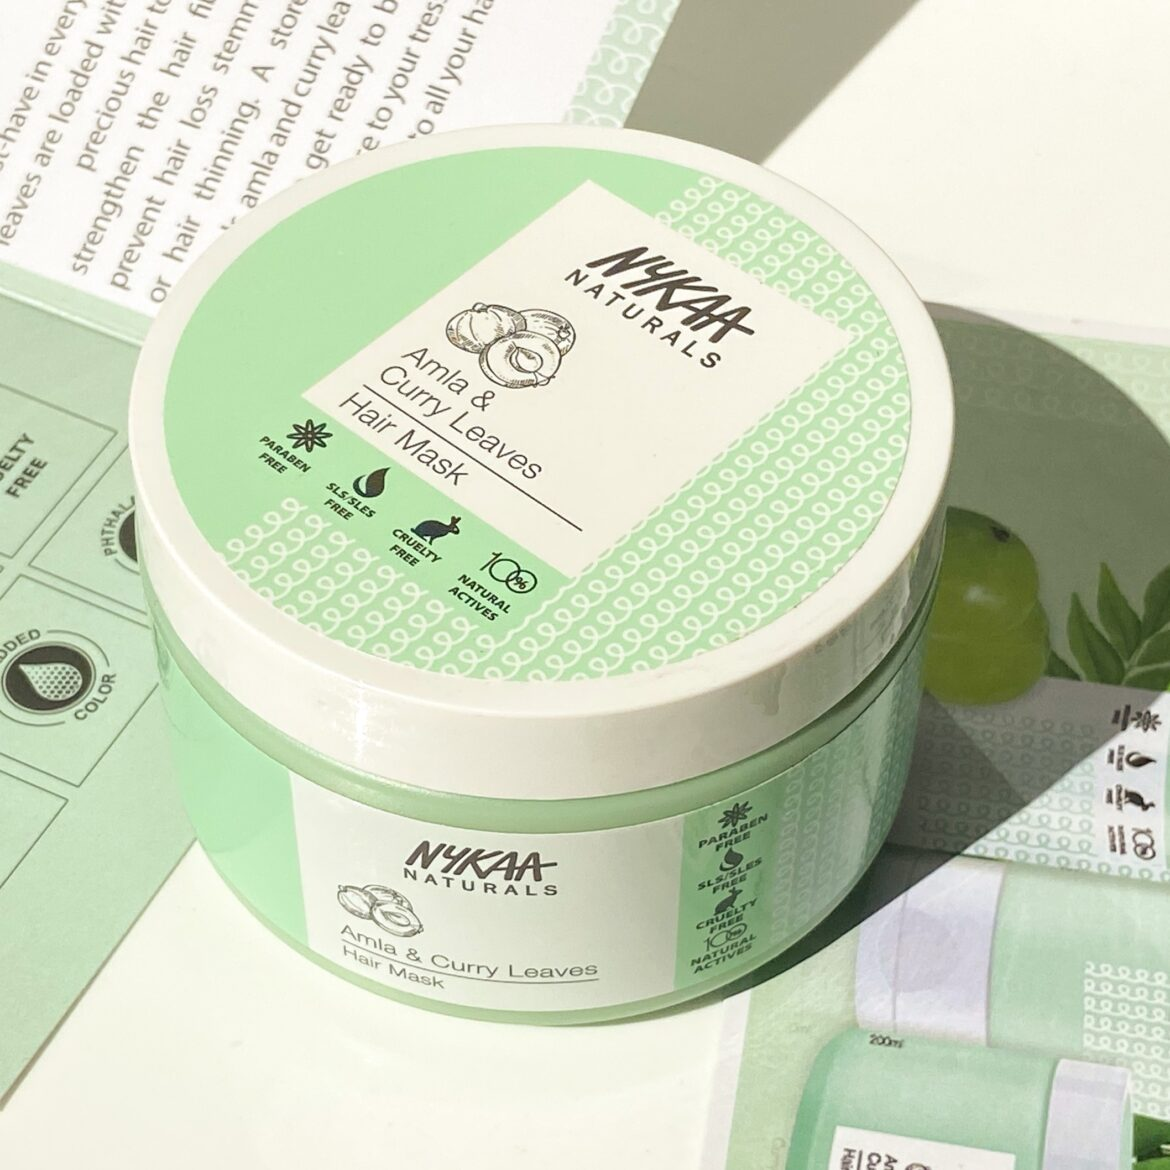 Nykaa Naturals Amla and Curry Leaves Hair Mask Review